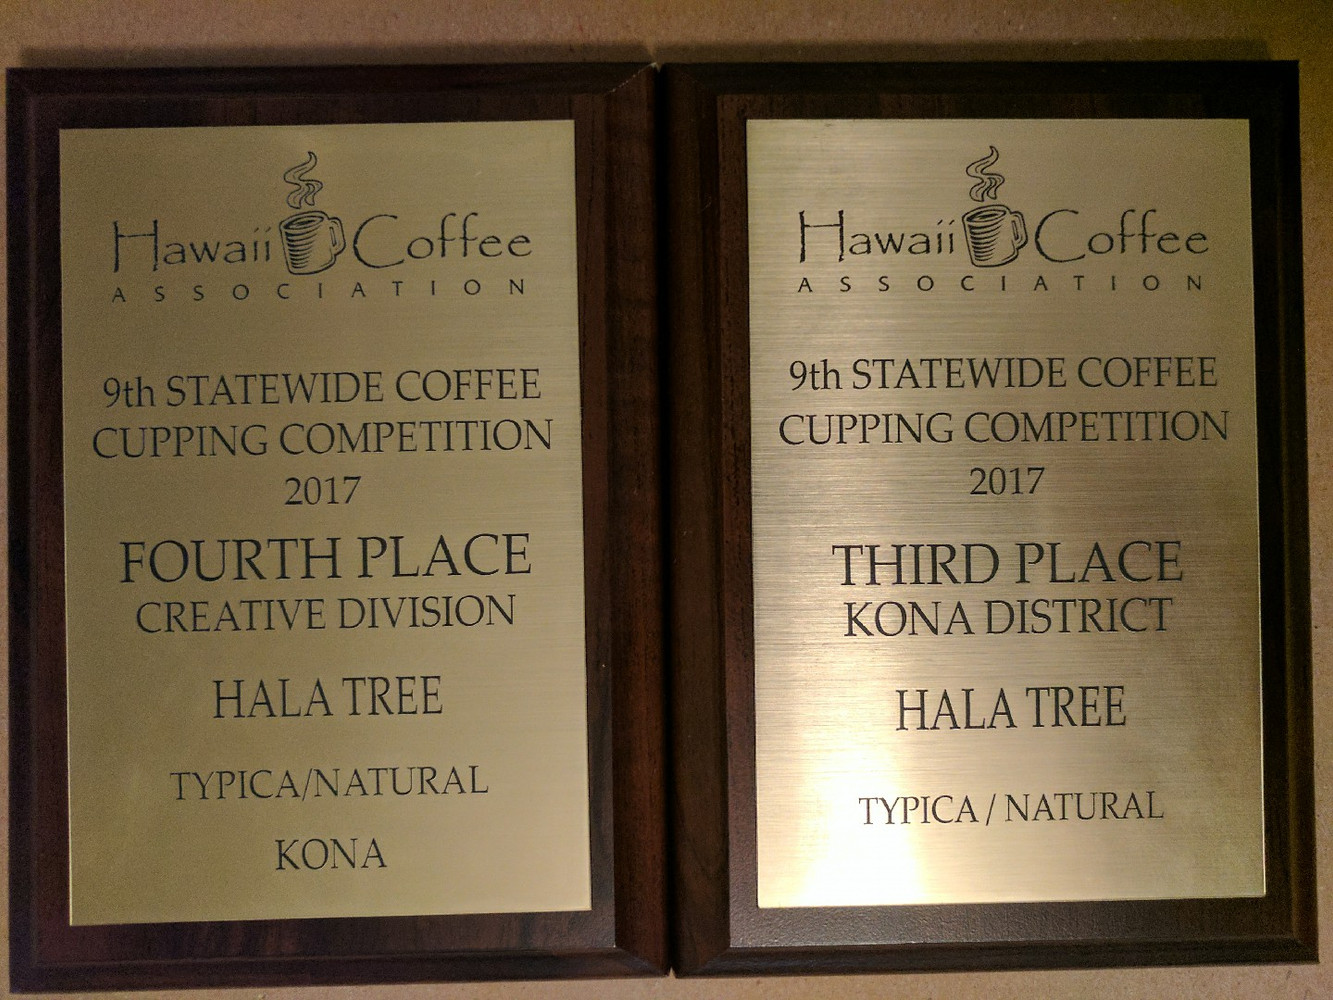 2017 Hawaii Coffee Association cupping competition results